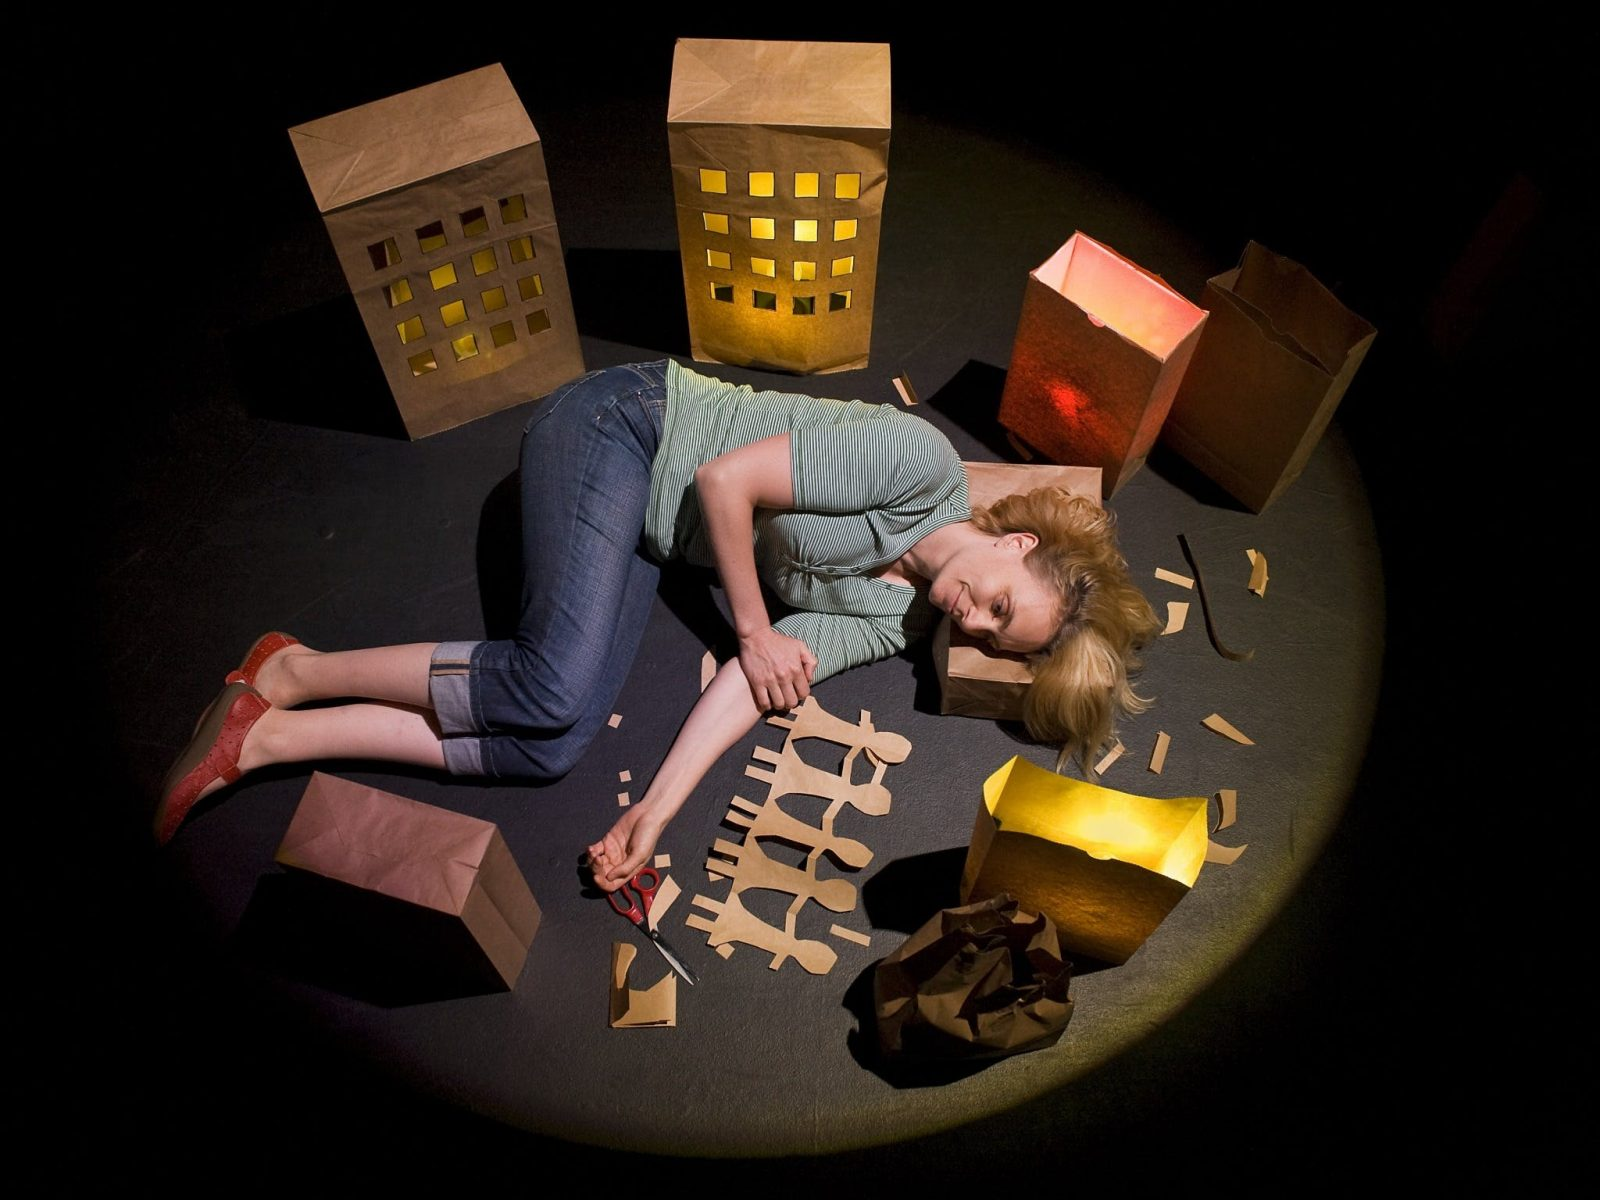 A woman lays curled on the floor surrounded by paper houses